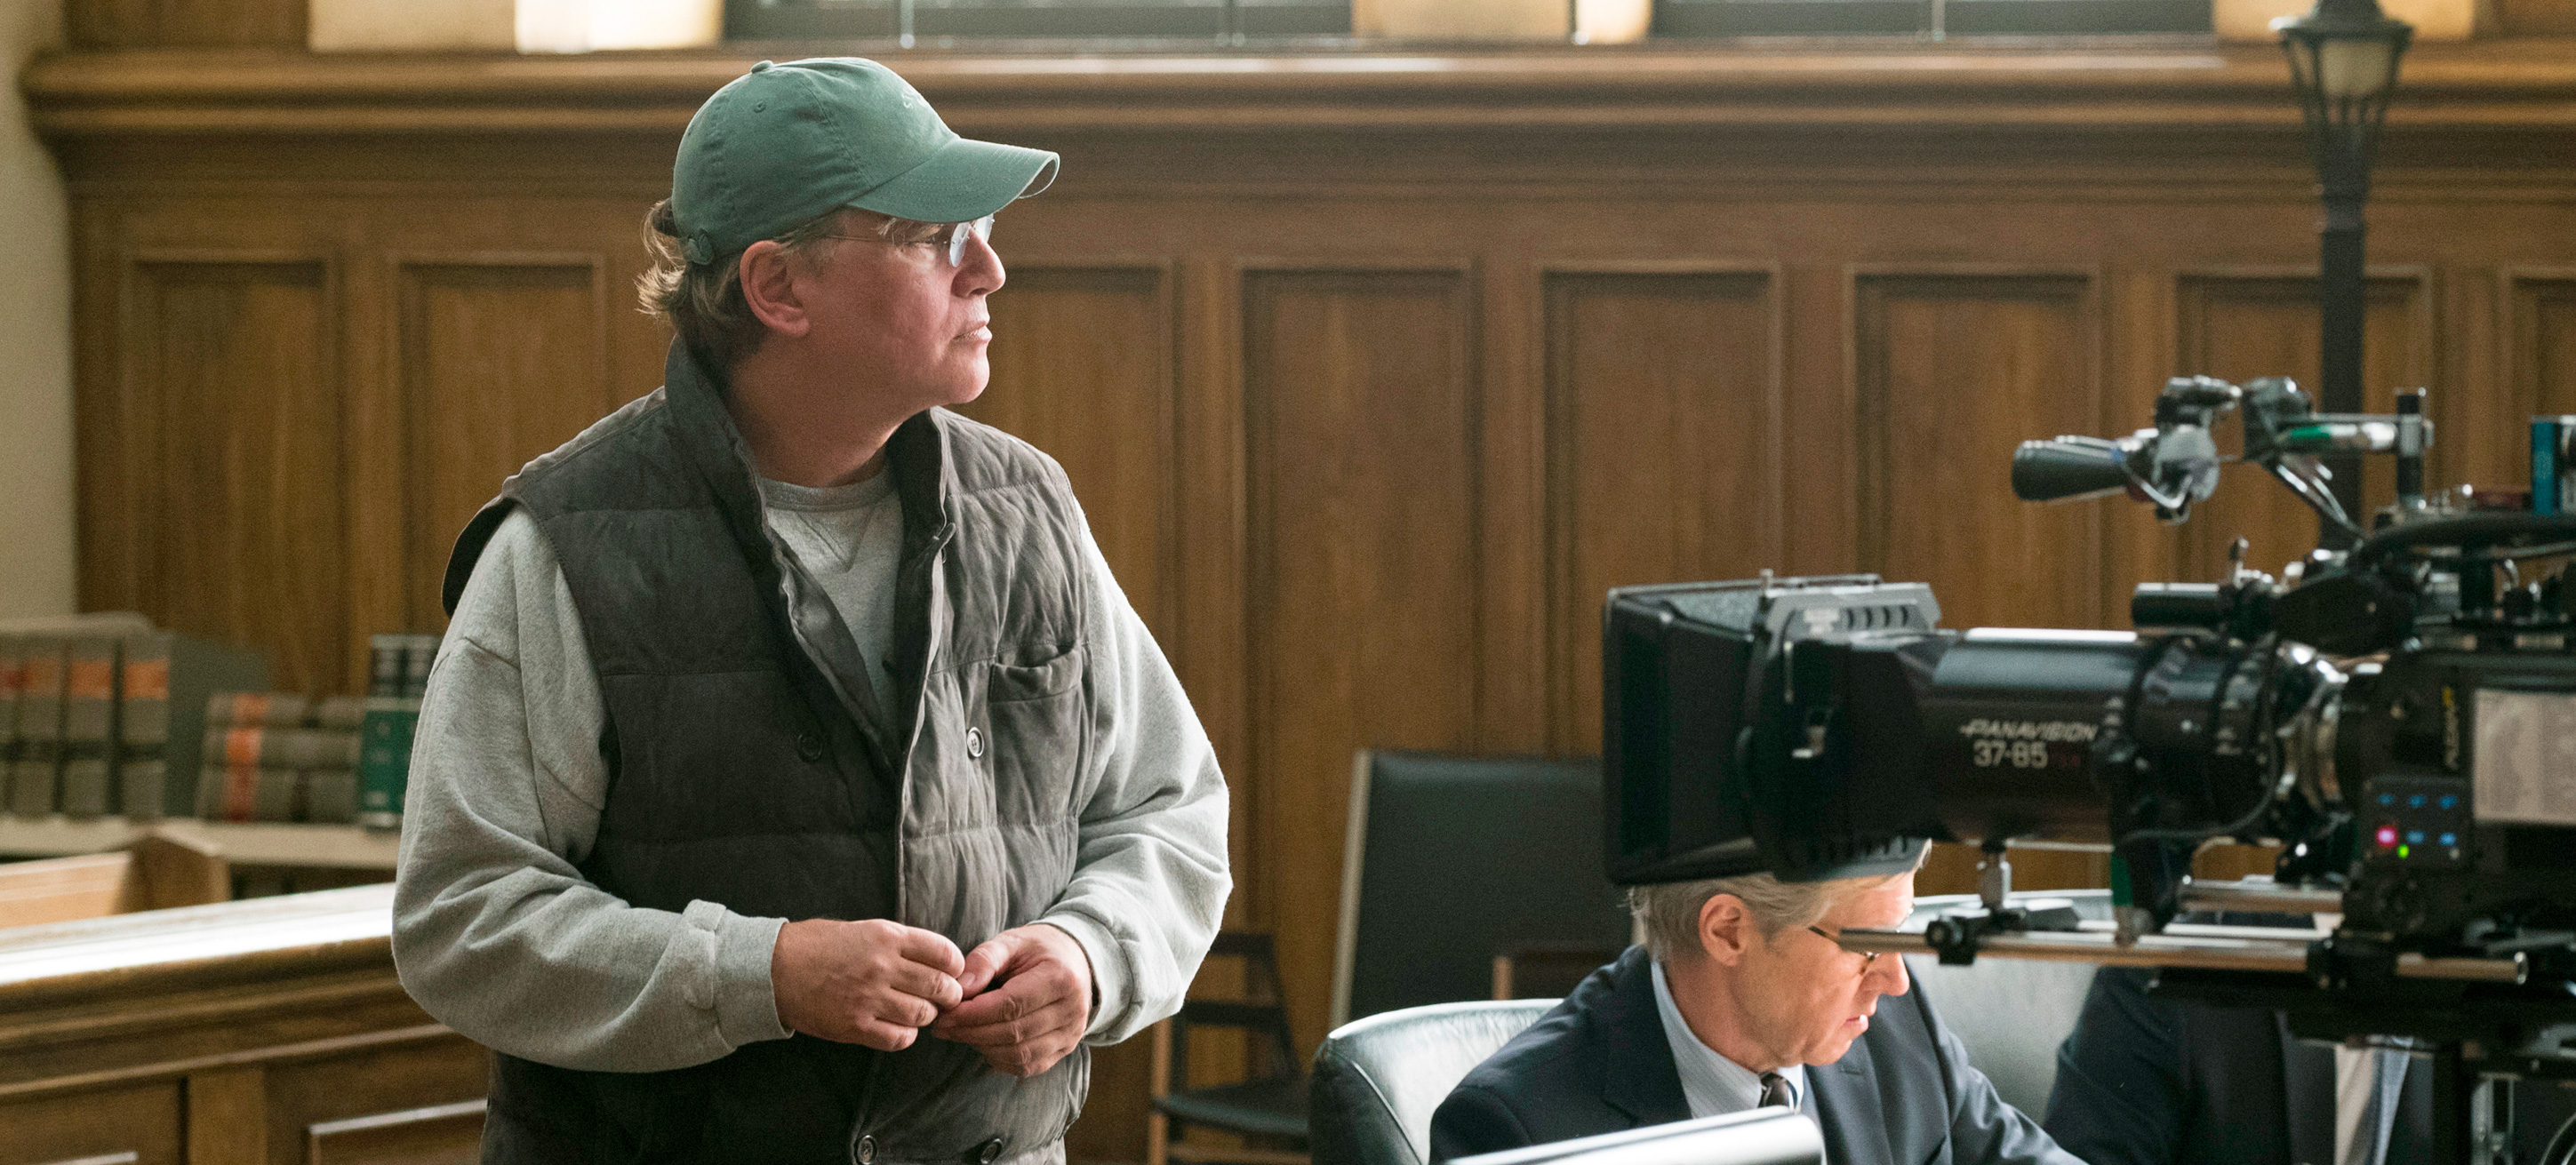 Pre-Production on Aaron Sorkin's Trial of the Chicago 7 Shut Down /Film